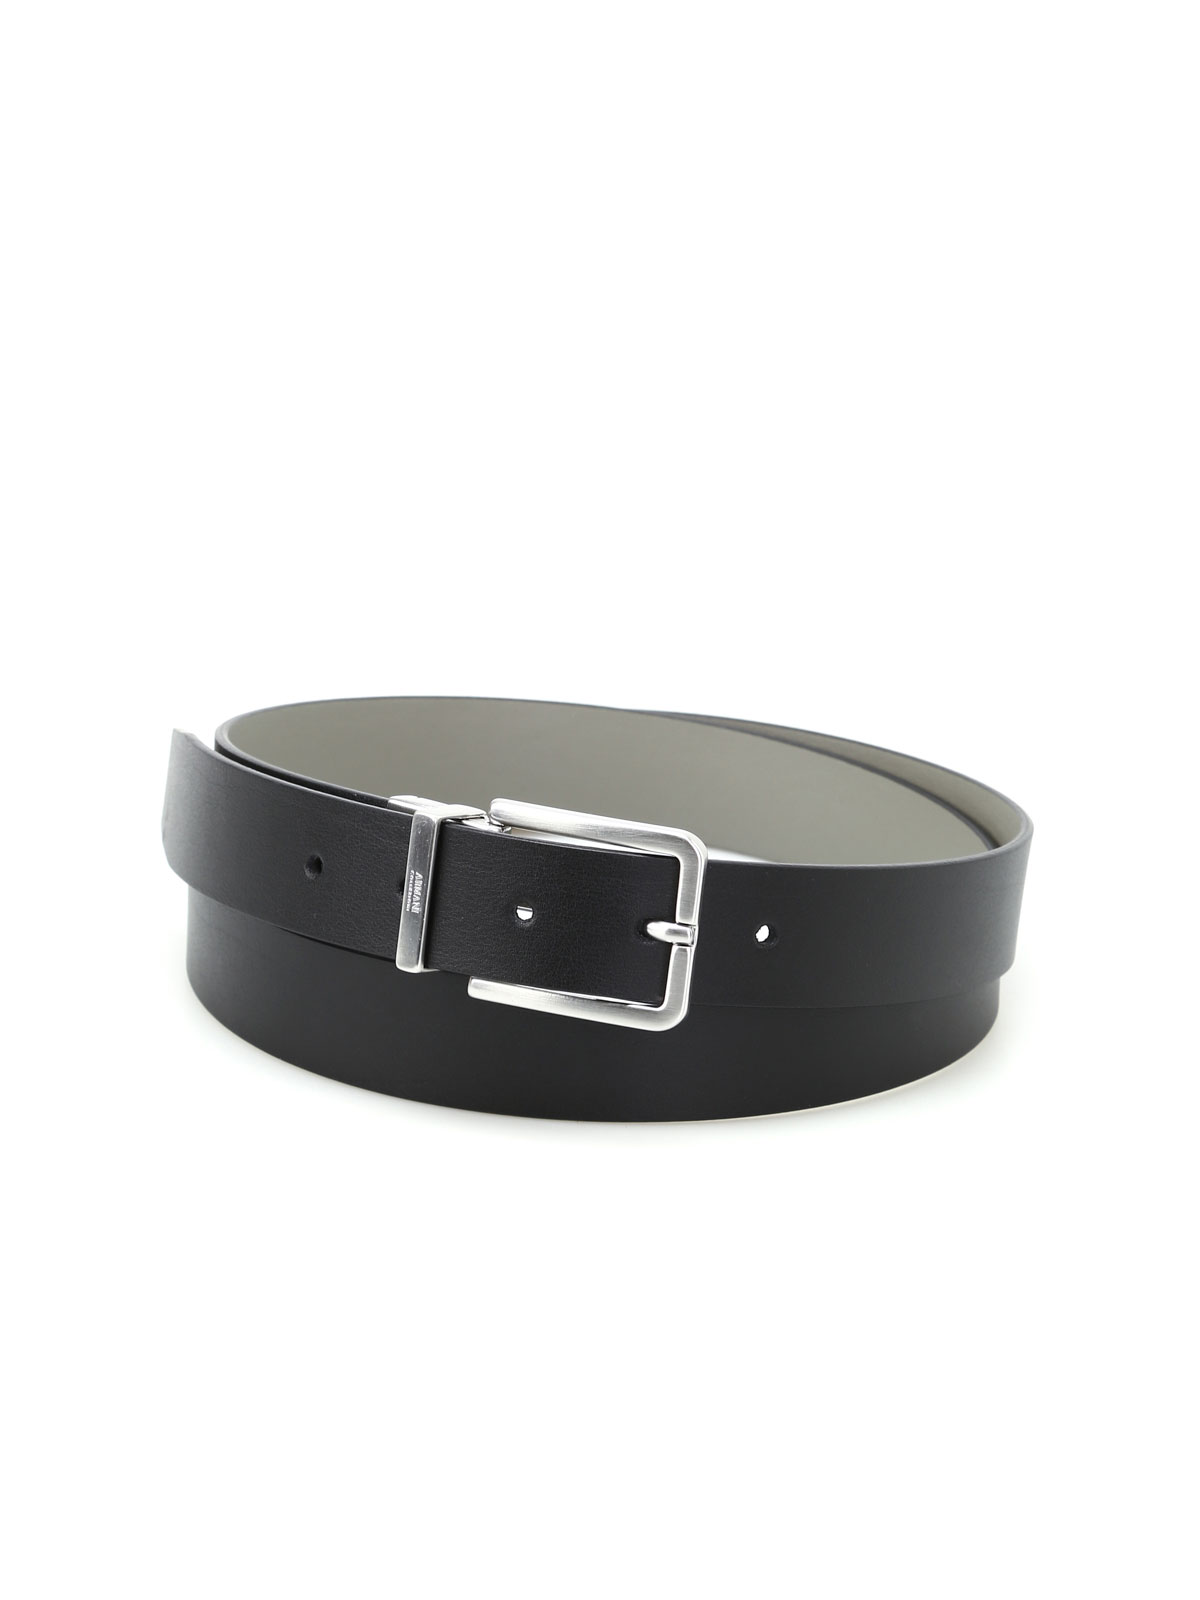 Picture of ARMANI | BELT Cintura reversibile